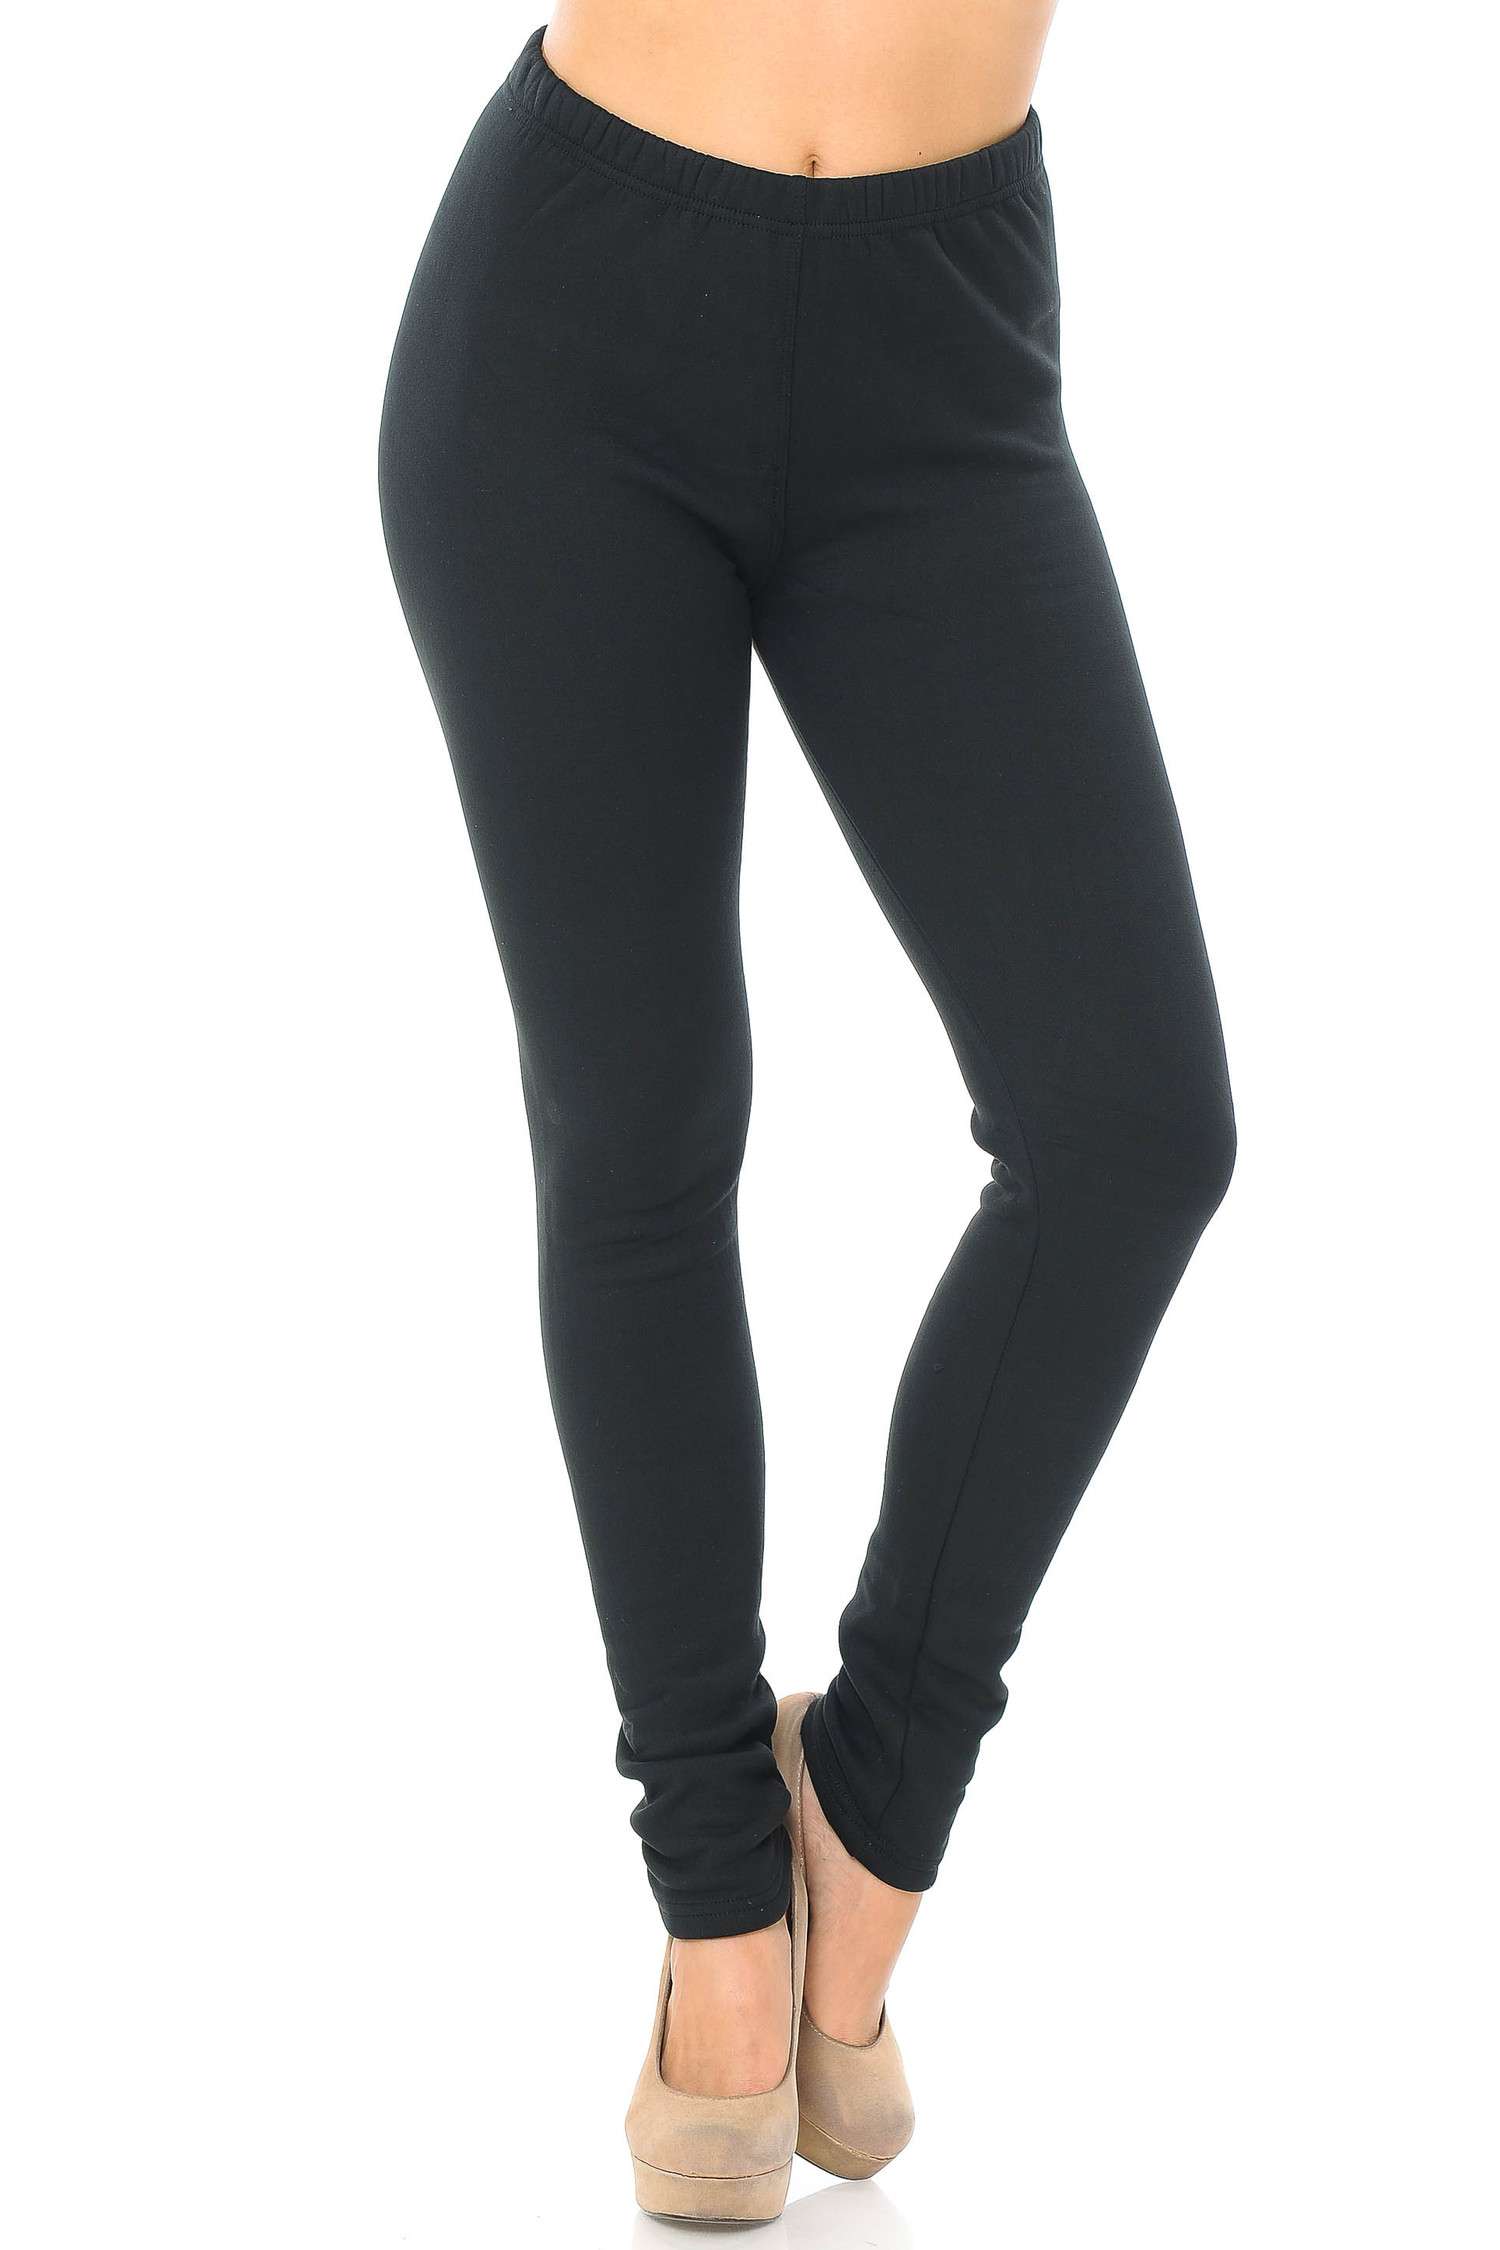 Front side bent knee view of Creamy Soft Fleece Lined Plus Size Leggings - USA Fashion™